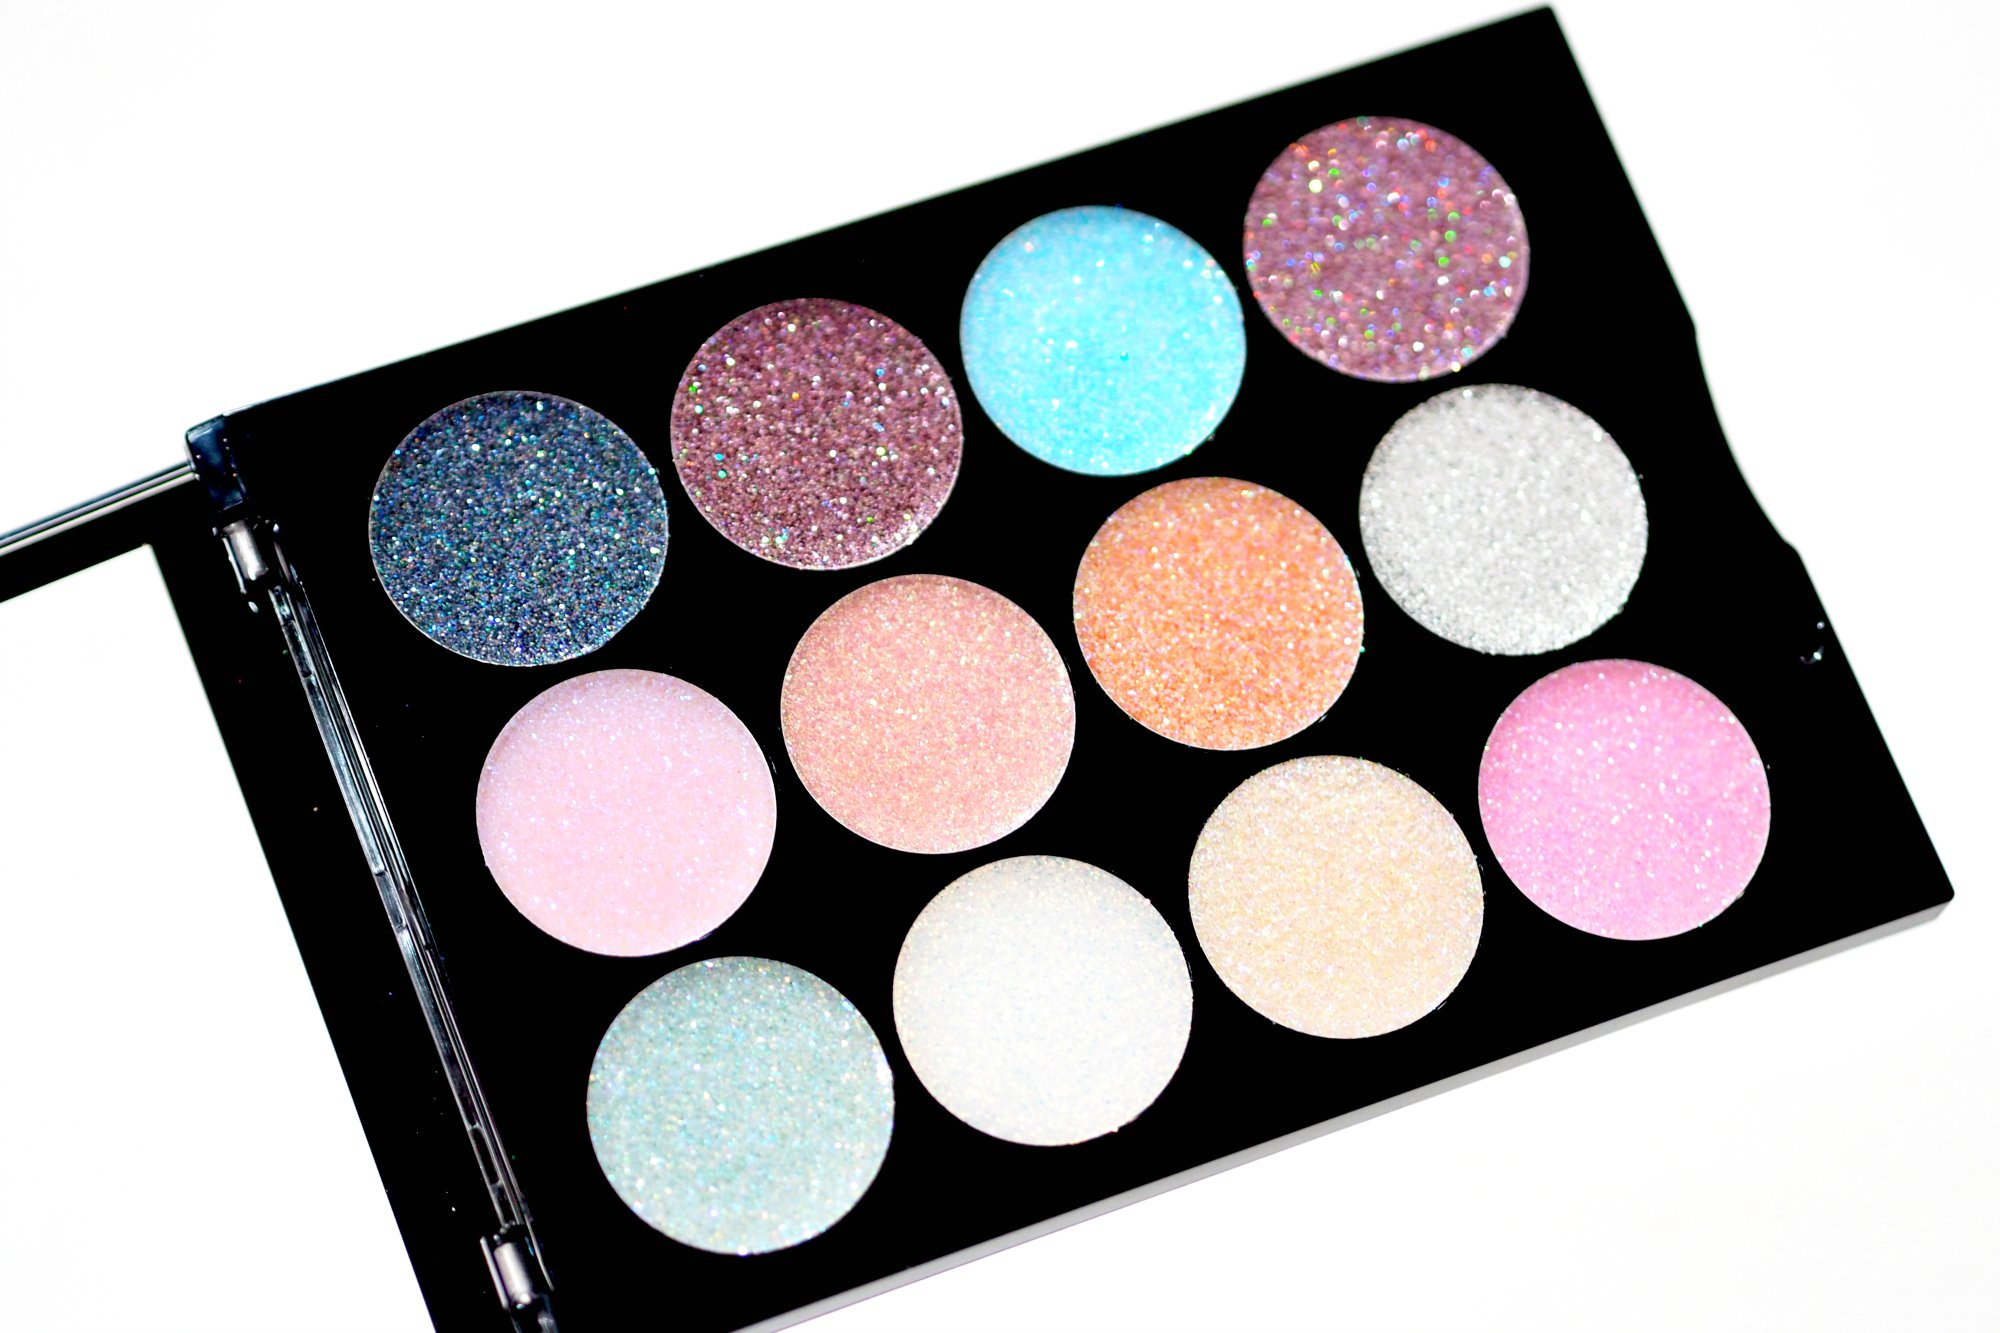 MUA Ultra Sparkle Palette in Cotton Candy Face and Body Glitter Gels - Review and Swatches